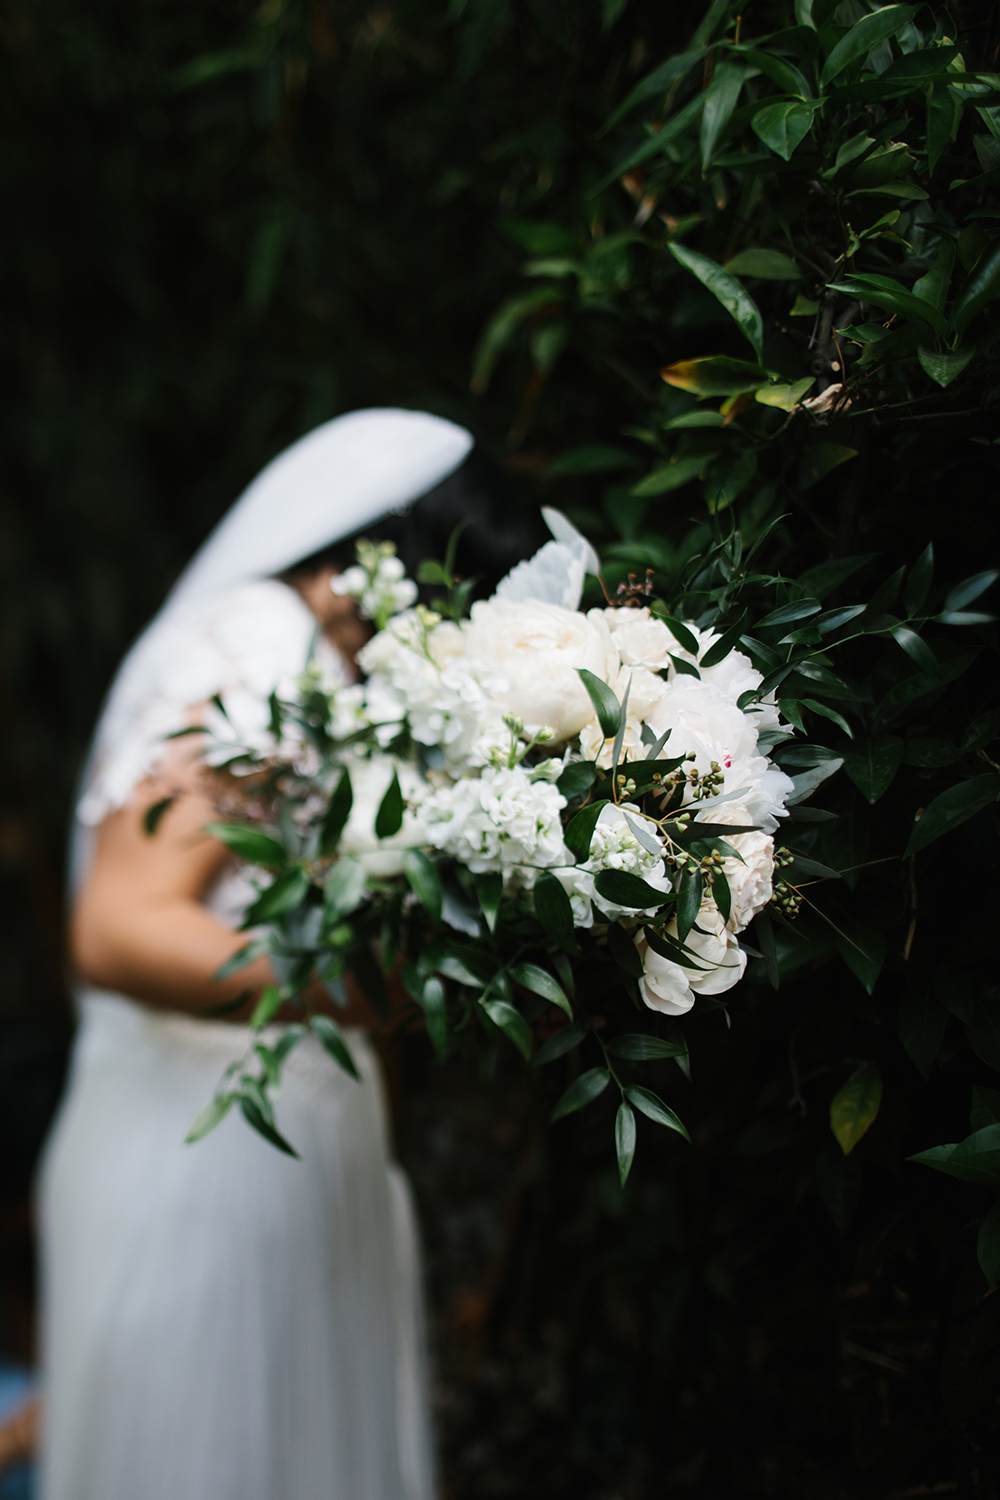 Moody white and green bridal bouquet